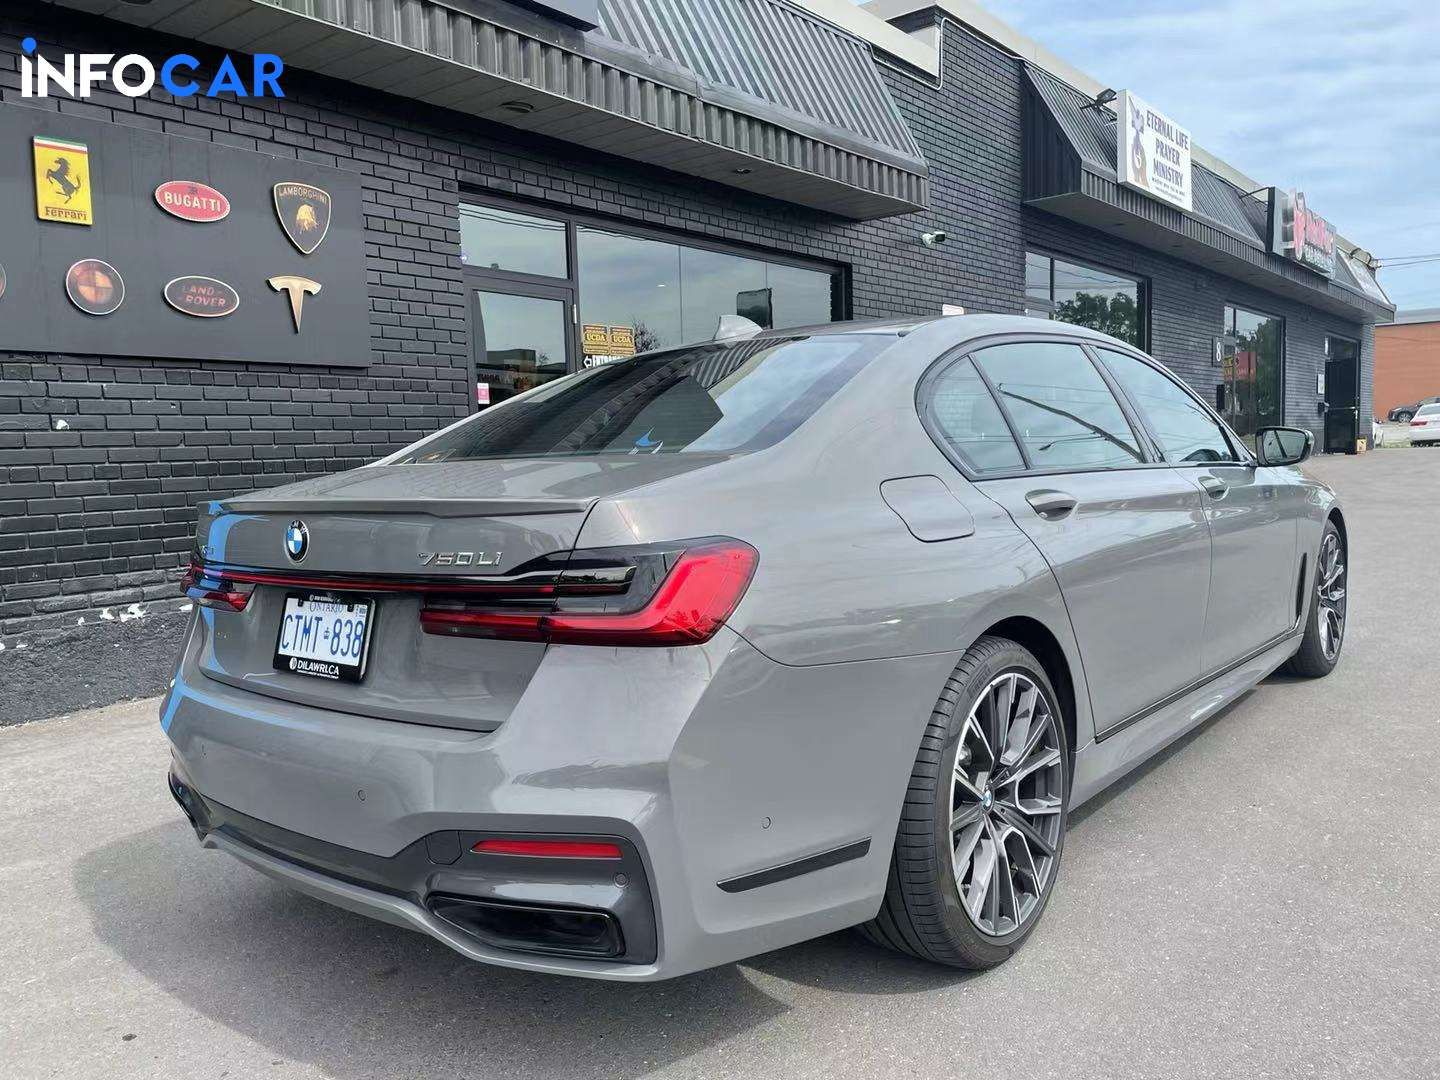 2020 BMW 7-Series 750 - INFOCAR - Toronto's Most Comprehensive New and Used Auto Trading Platform